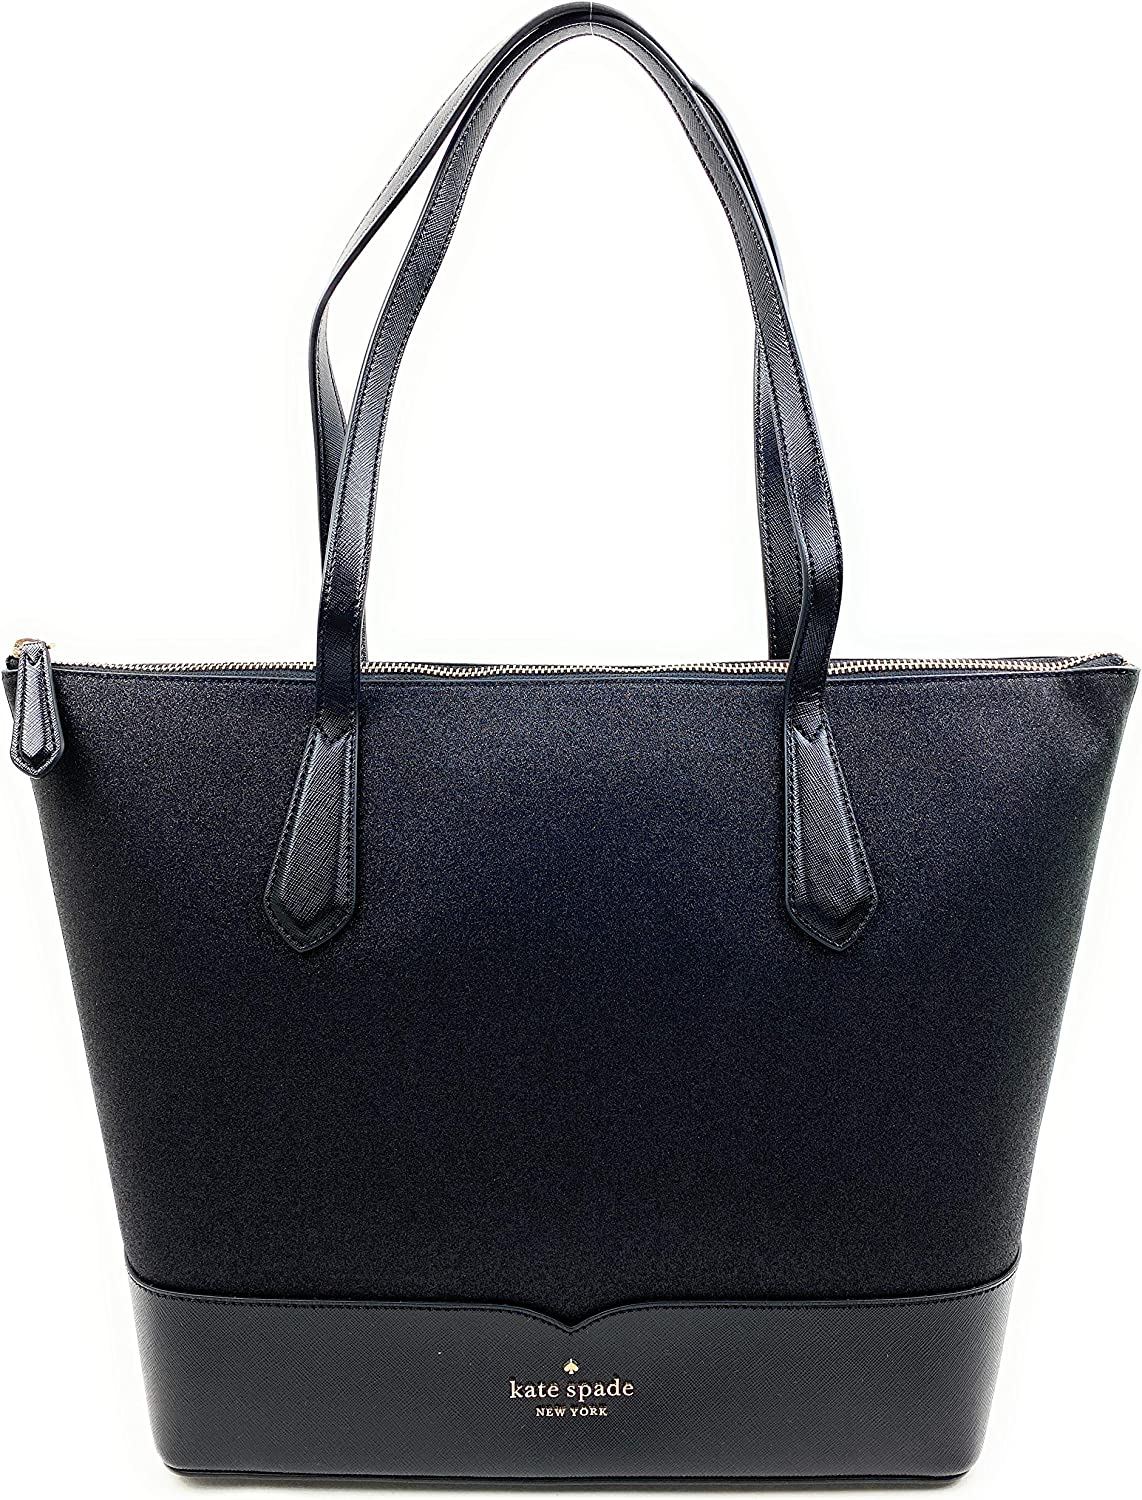 Kate Spade New York Lola Black Glitter tote Large Max 62% OFF National products